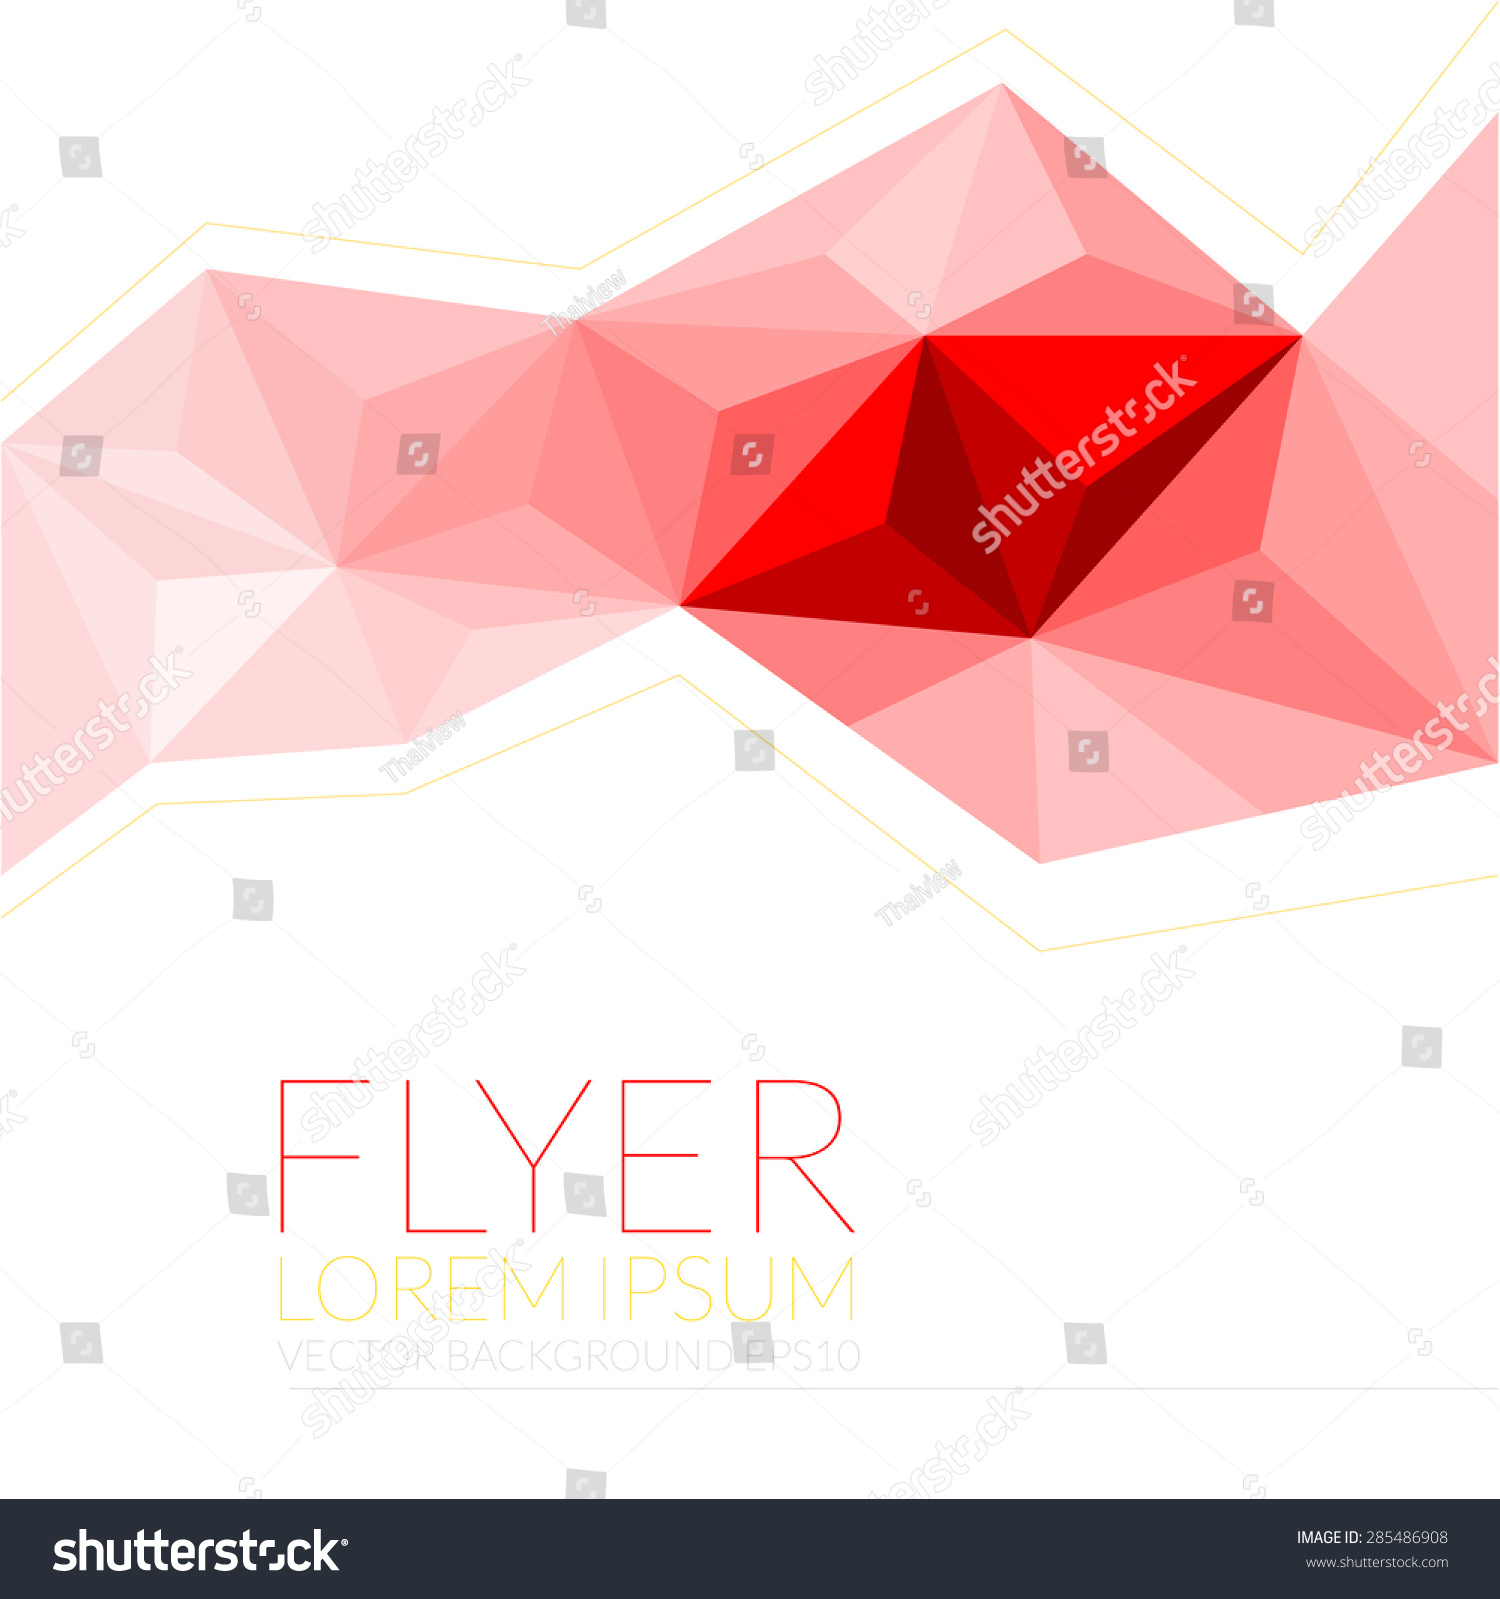 Red Polygon Background Flyer Template Brochure Vector – Geometric Flyer Template